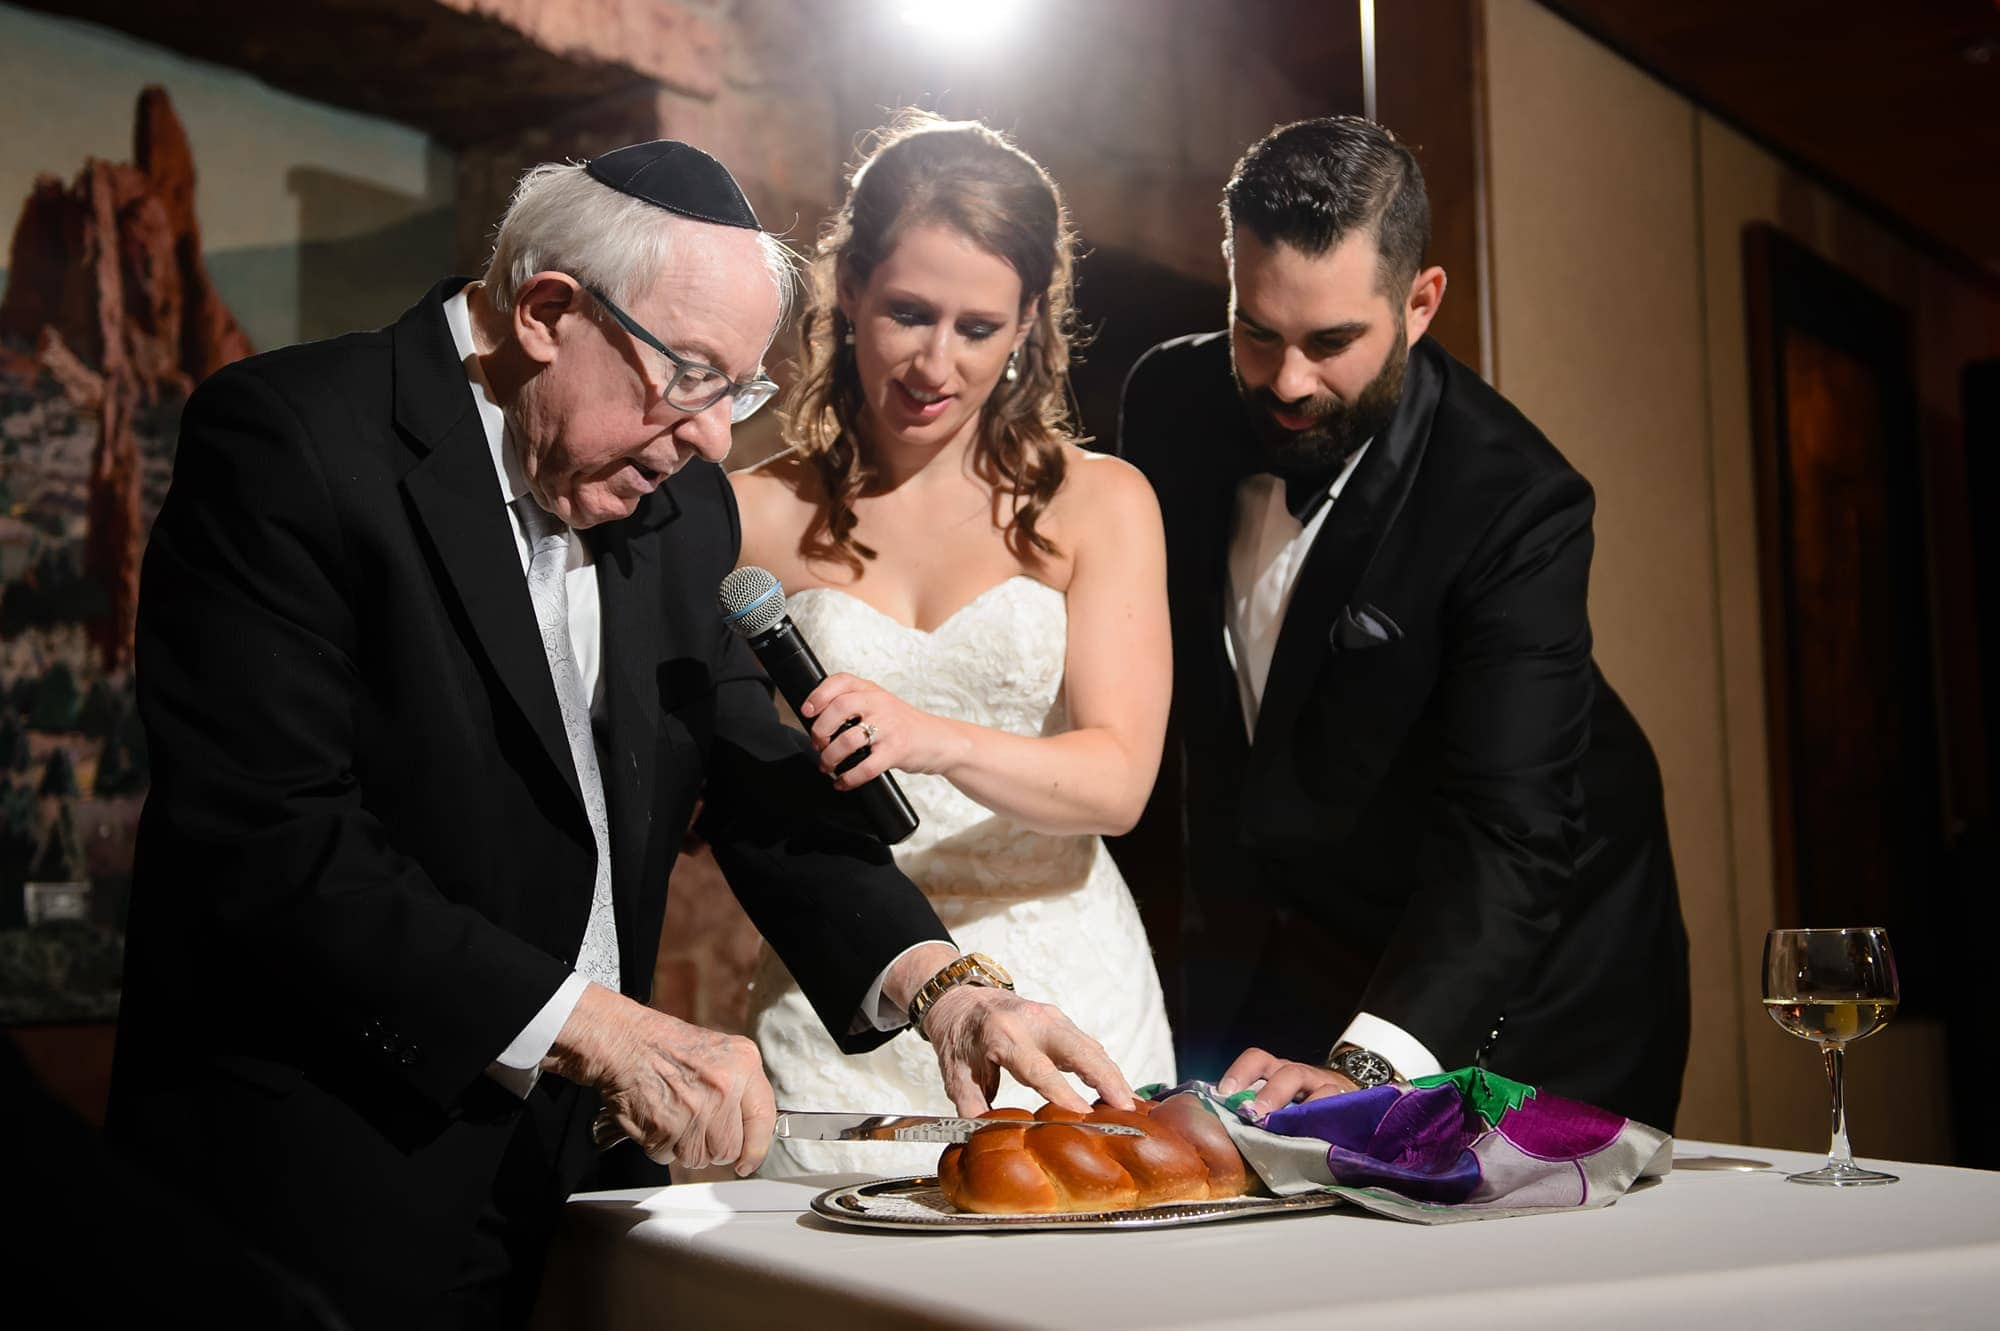 Devan's grandfather cuts the challah